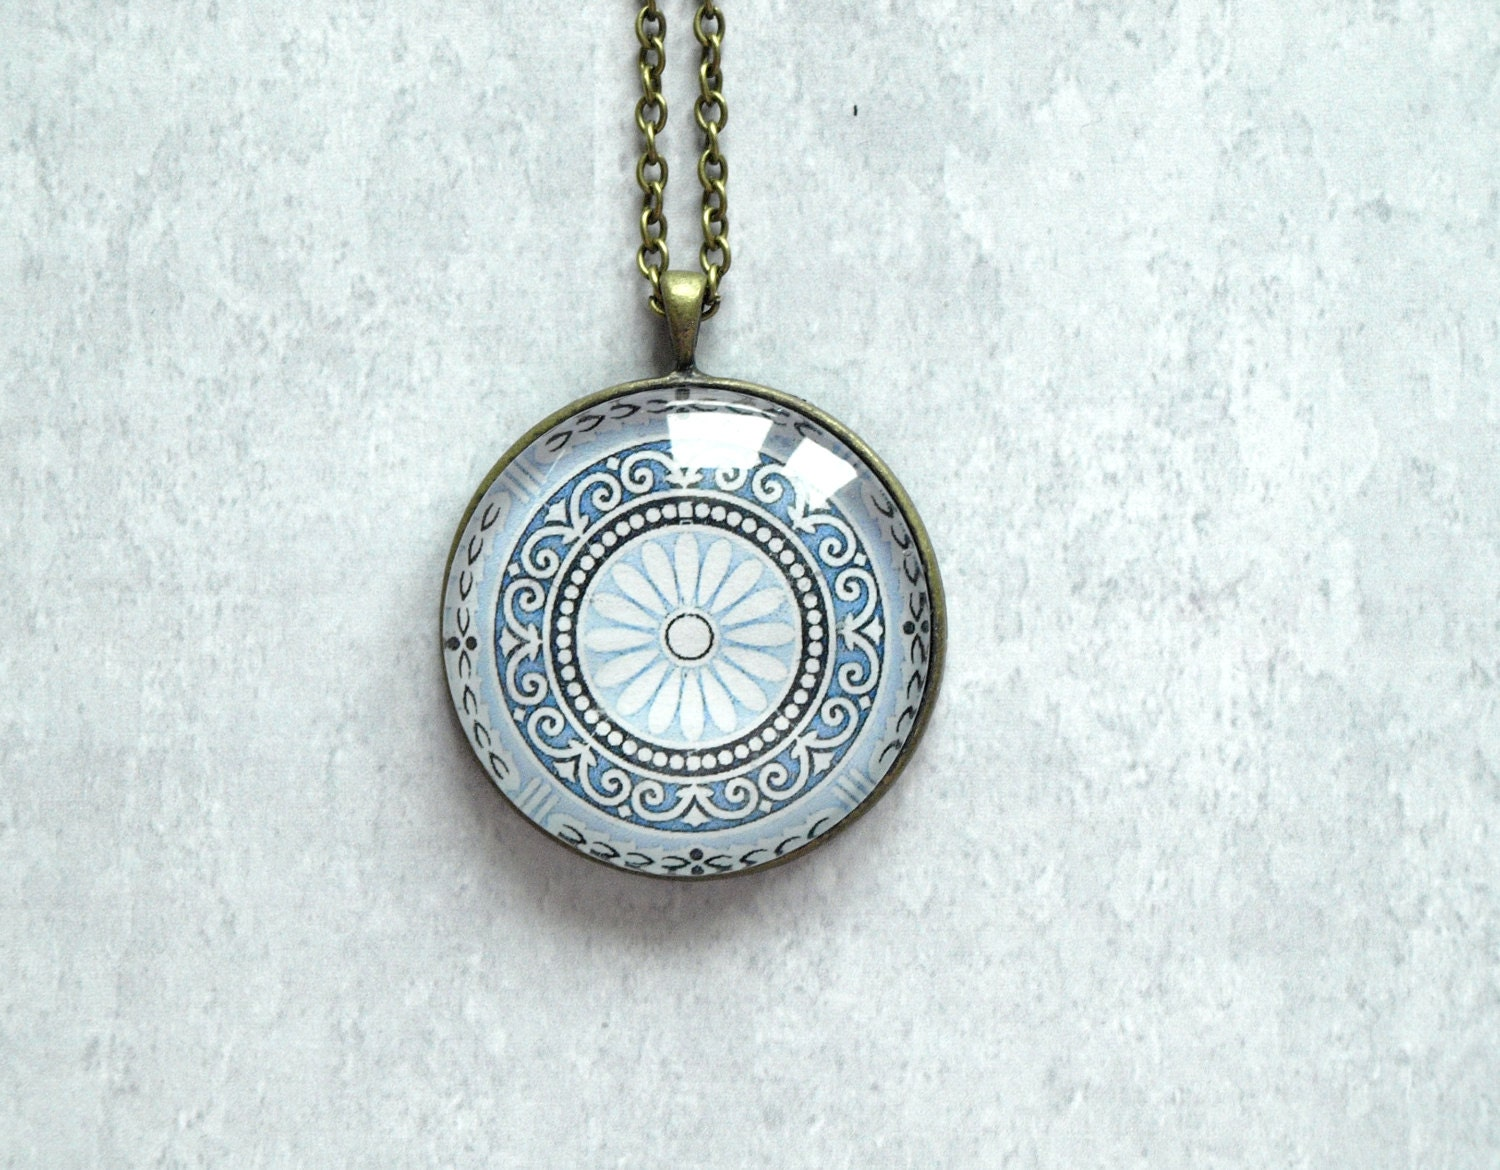 Blue Vintage Ornament pendant - oriental pendant necklace - Rosette pendant necklace - glass dome pendant- glass cabochon pendant - ShoShanaArt